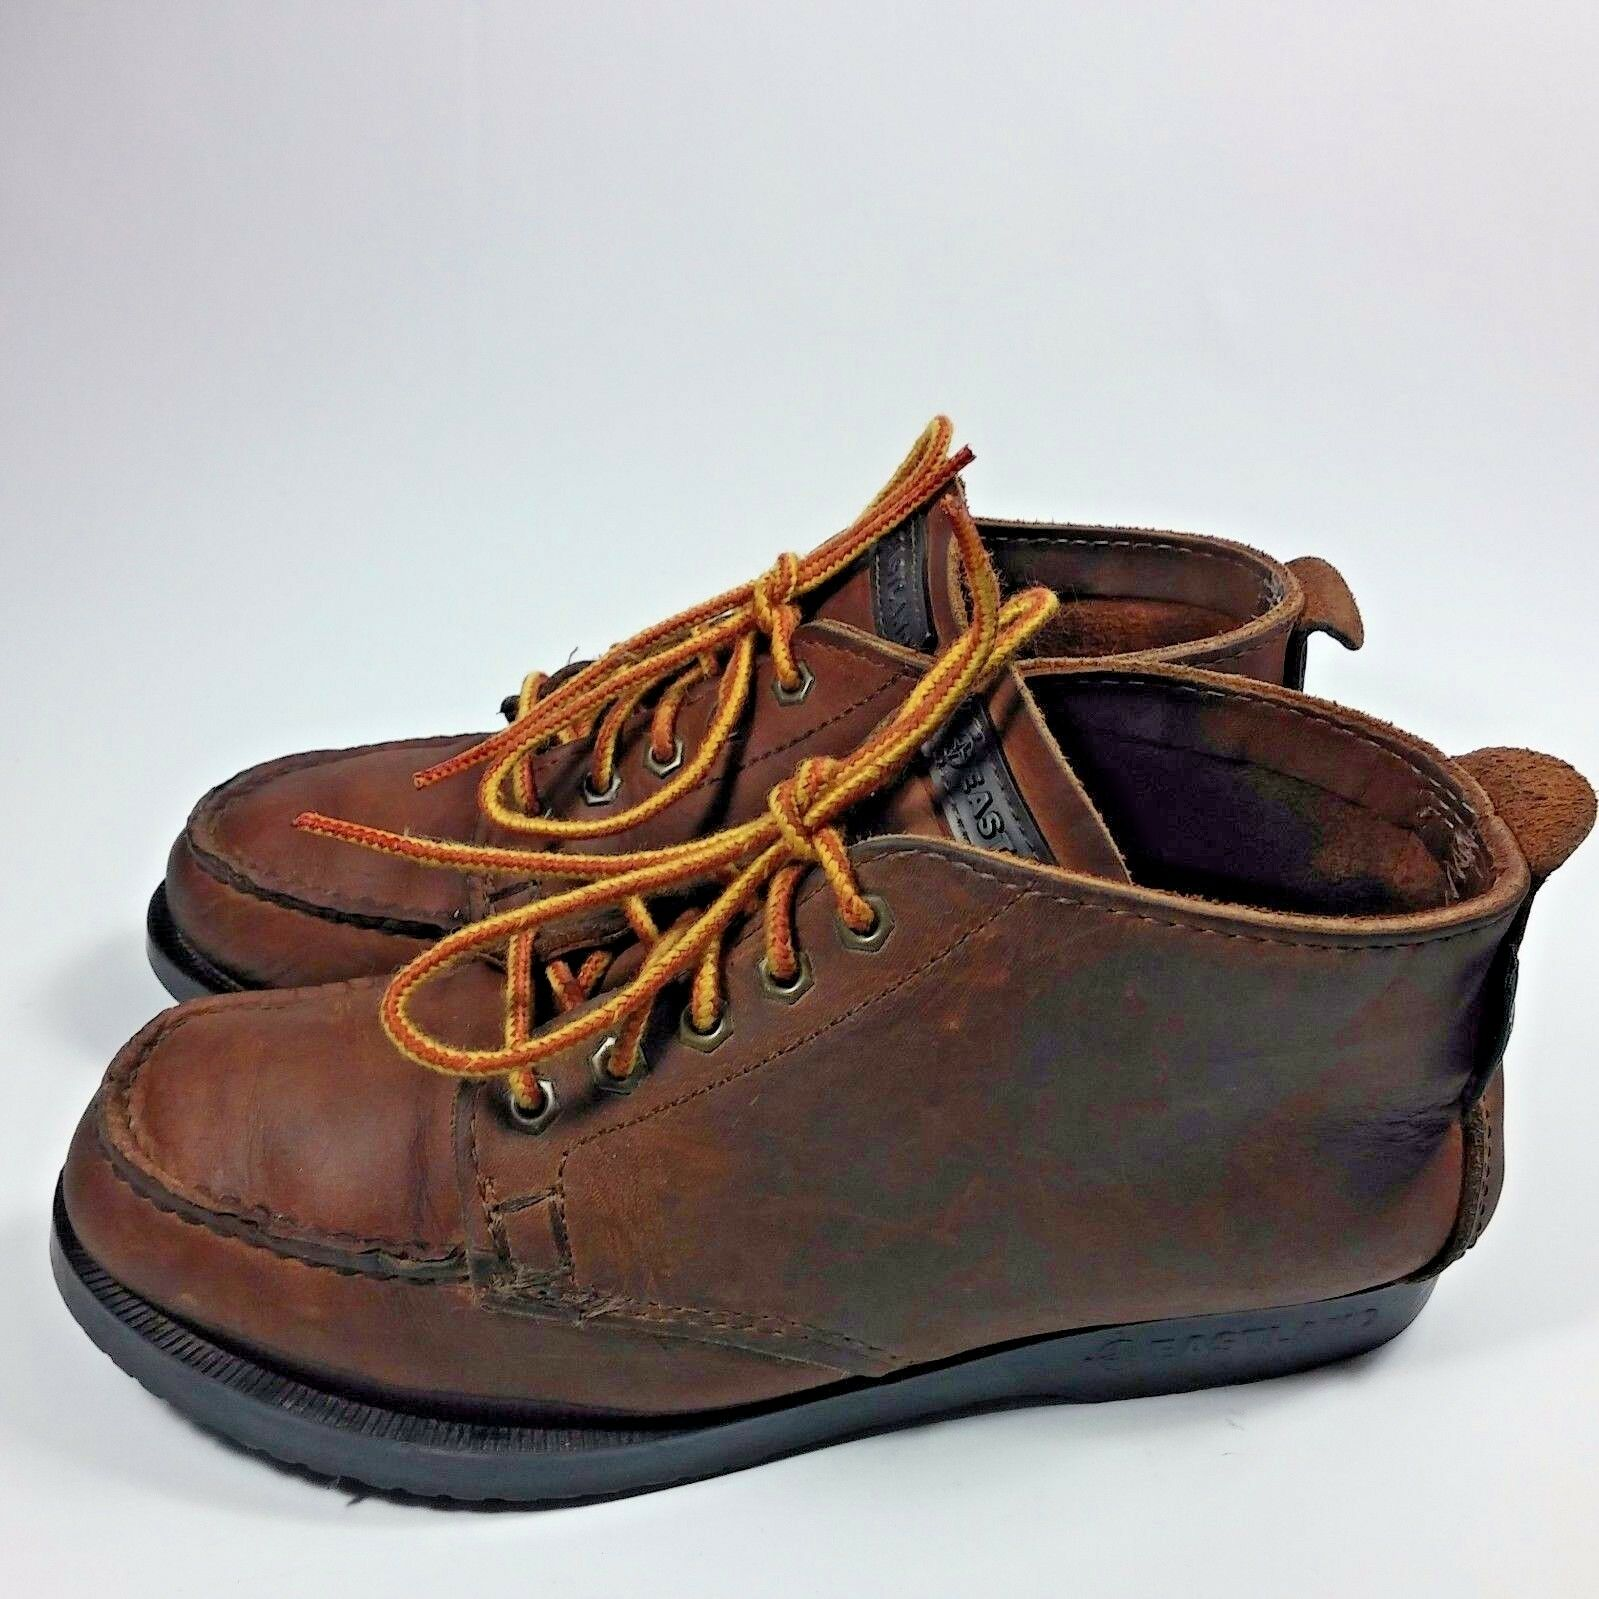 VINTAGE Women's Eastland USA Ankle Chukka Trail Hiking Moc Boots Brown Leather-7